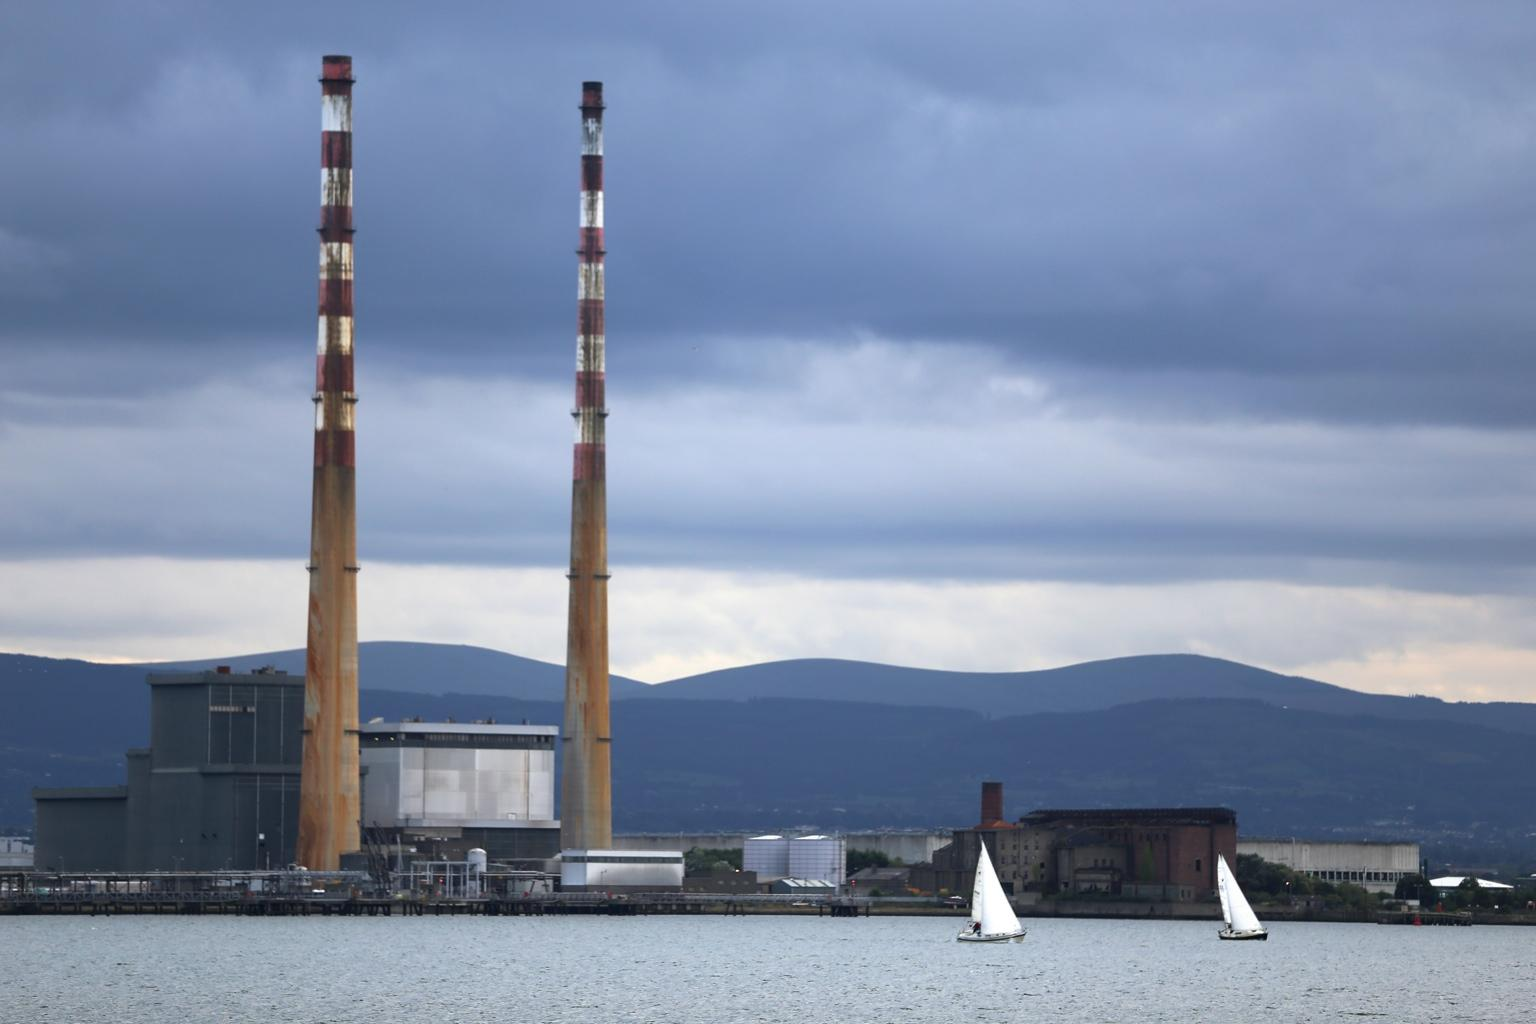 Poolbeg earlier. Total eyesore. http://t.co/Dz7XpQXWz7